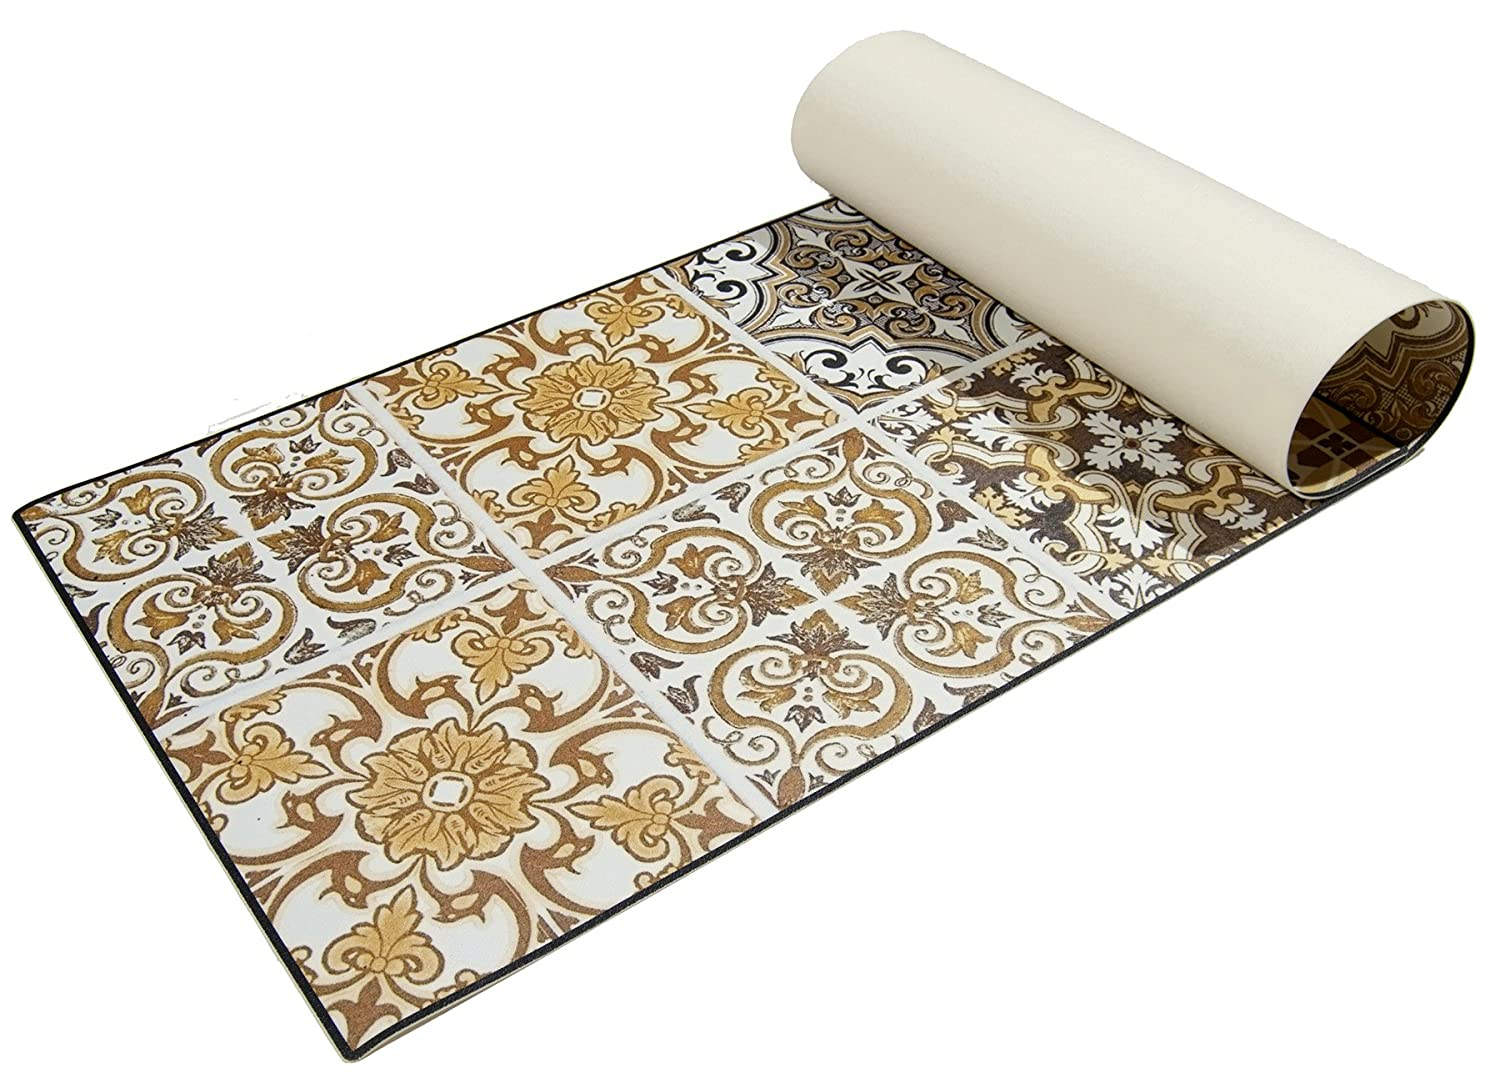 Amazon.com: Galleria Farah1970 120X50 cm Carpet Rugs Brand ...